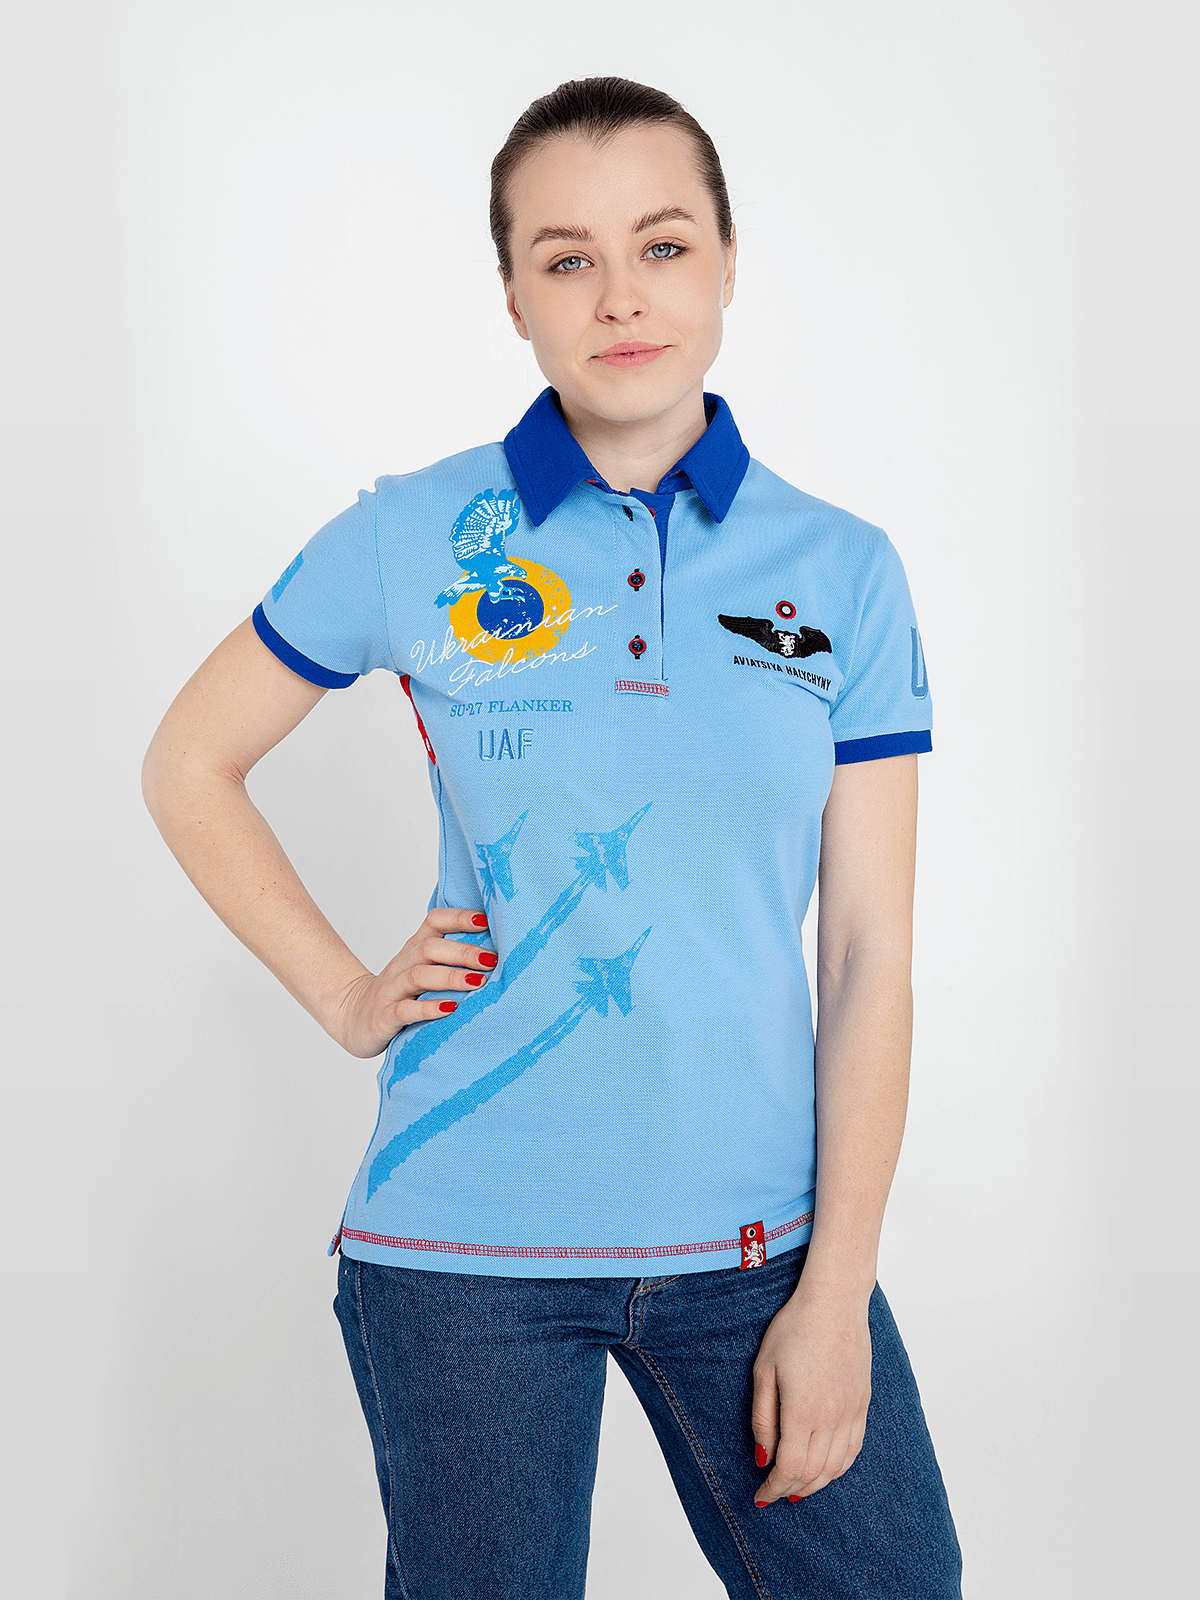 Women's Polo Shirt Ukrainian Falcons. Color sky blue. Pique fabric: 100% cotton.